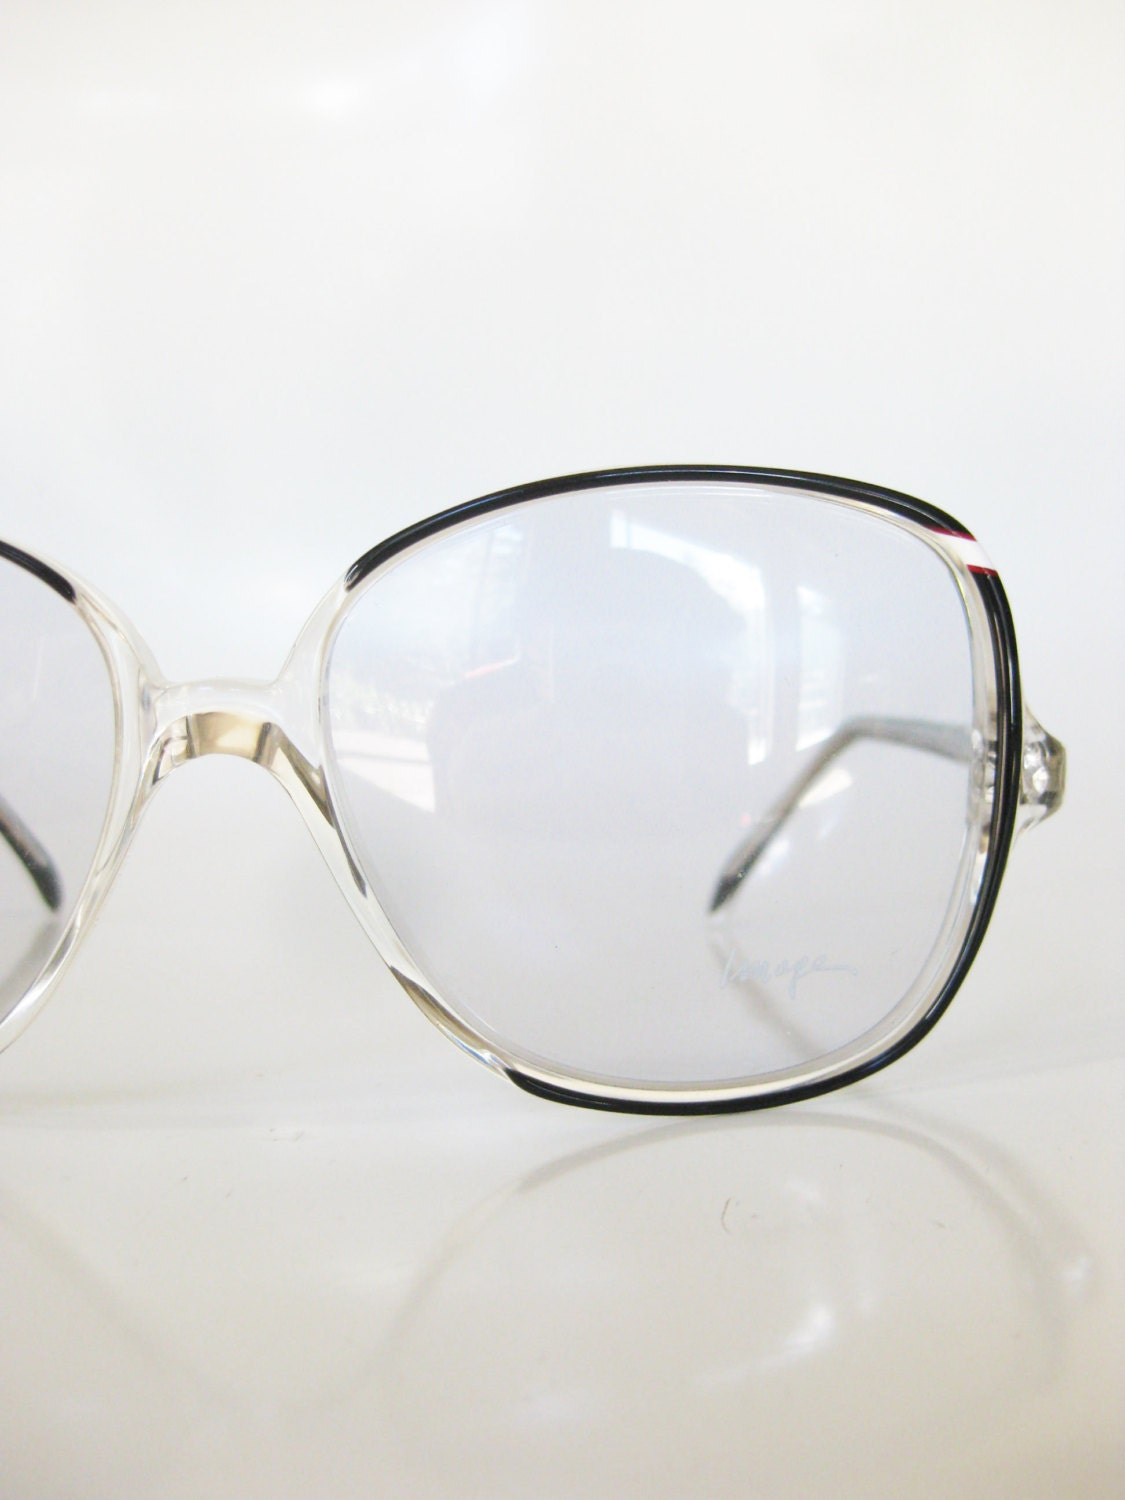 Glasses Frames Italian : Vintage Italian Black Clear Eyeglasses 1970s Glasses Sunnies